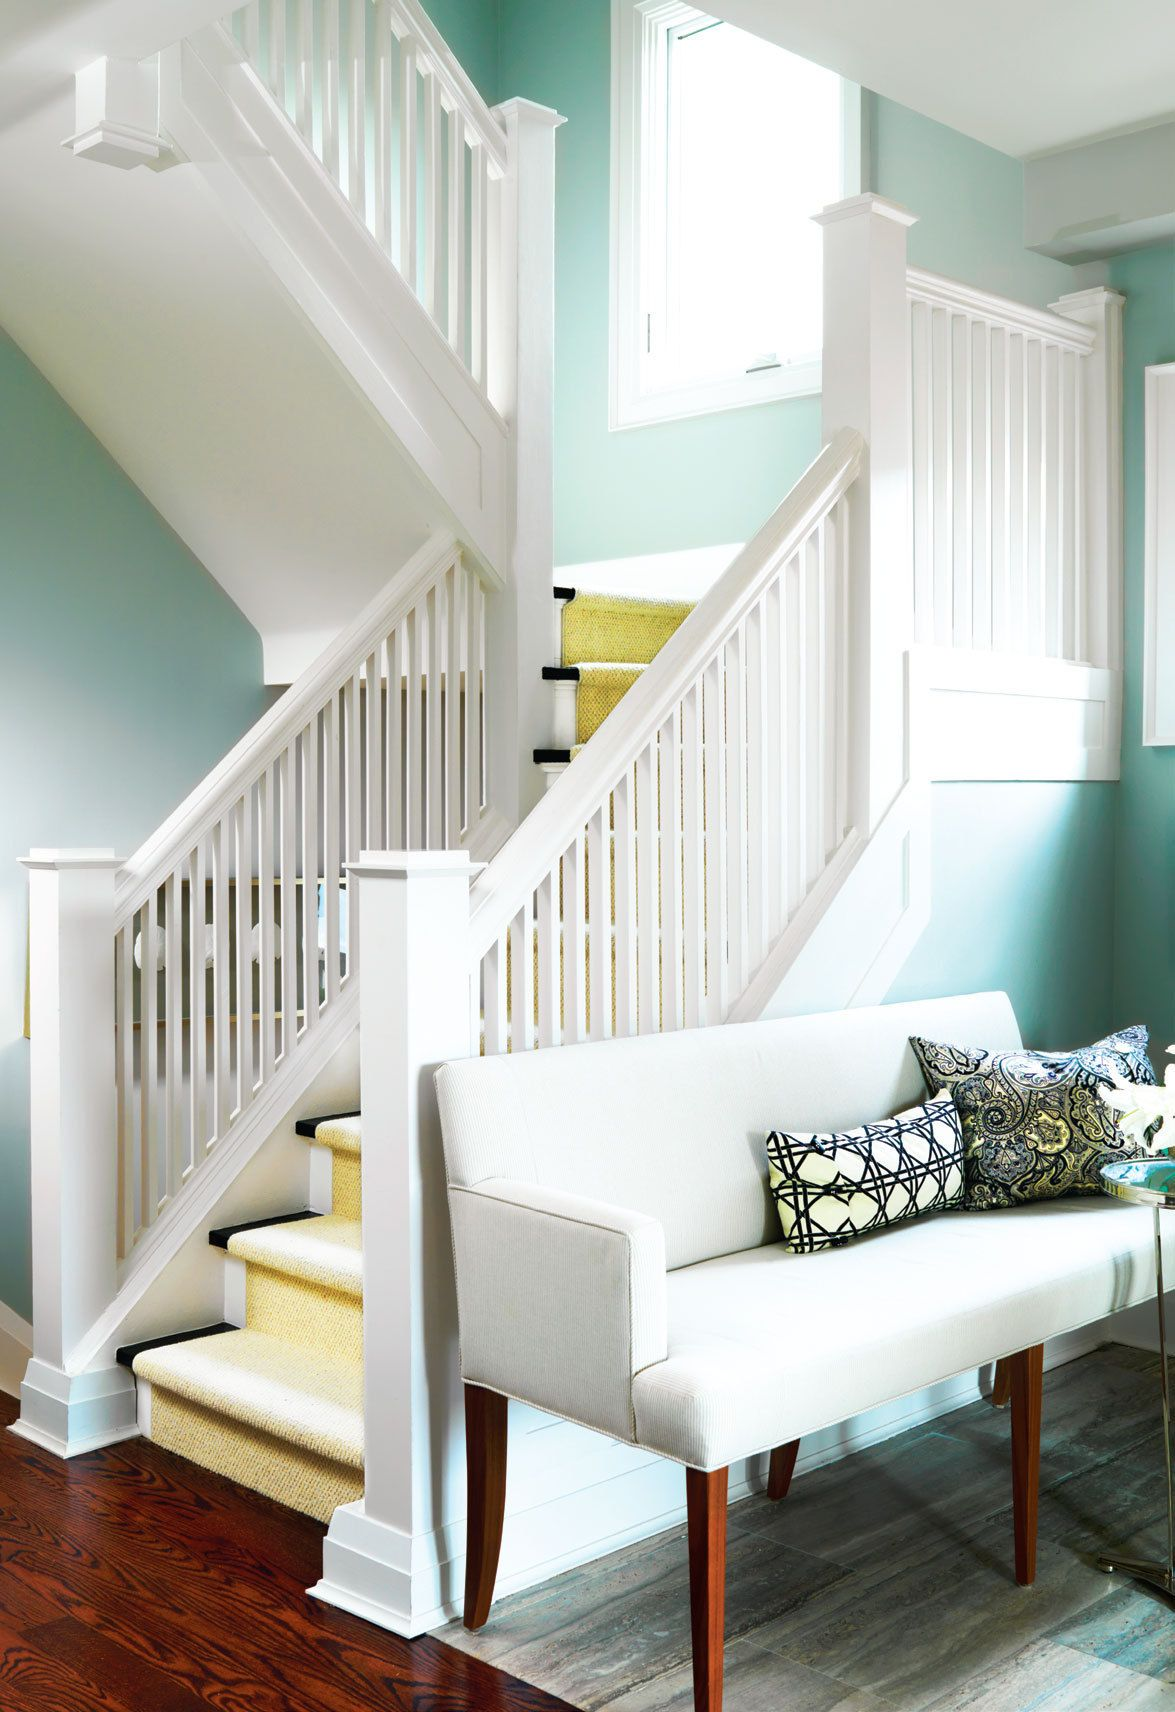 Narrow hallway colours   hallway decorating ideas thatull make coming home a treat  Entry